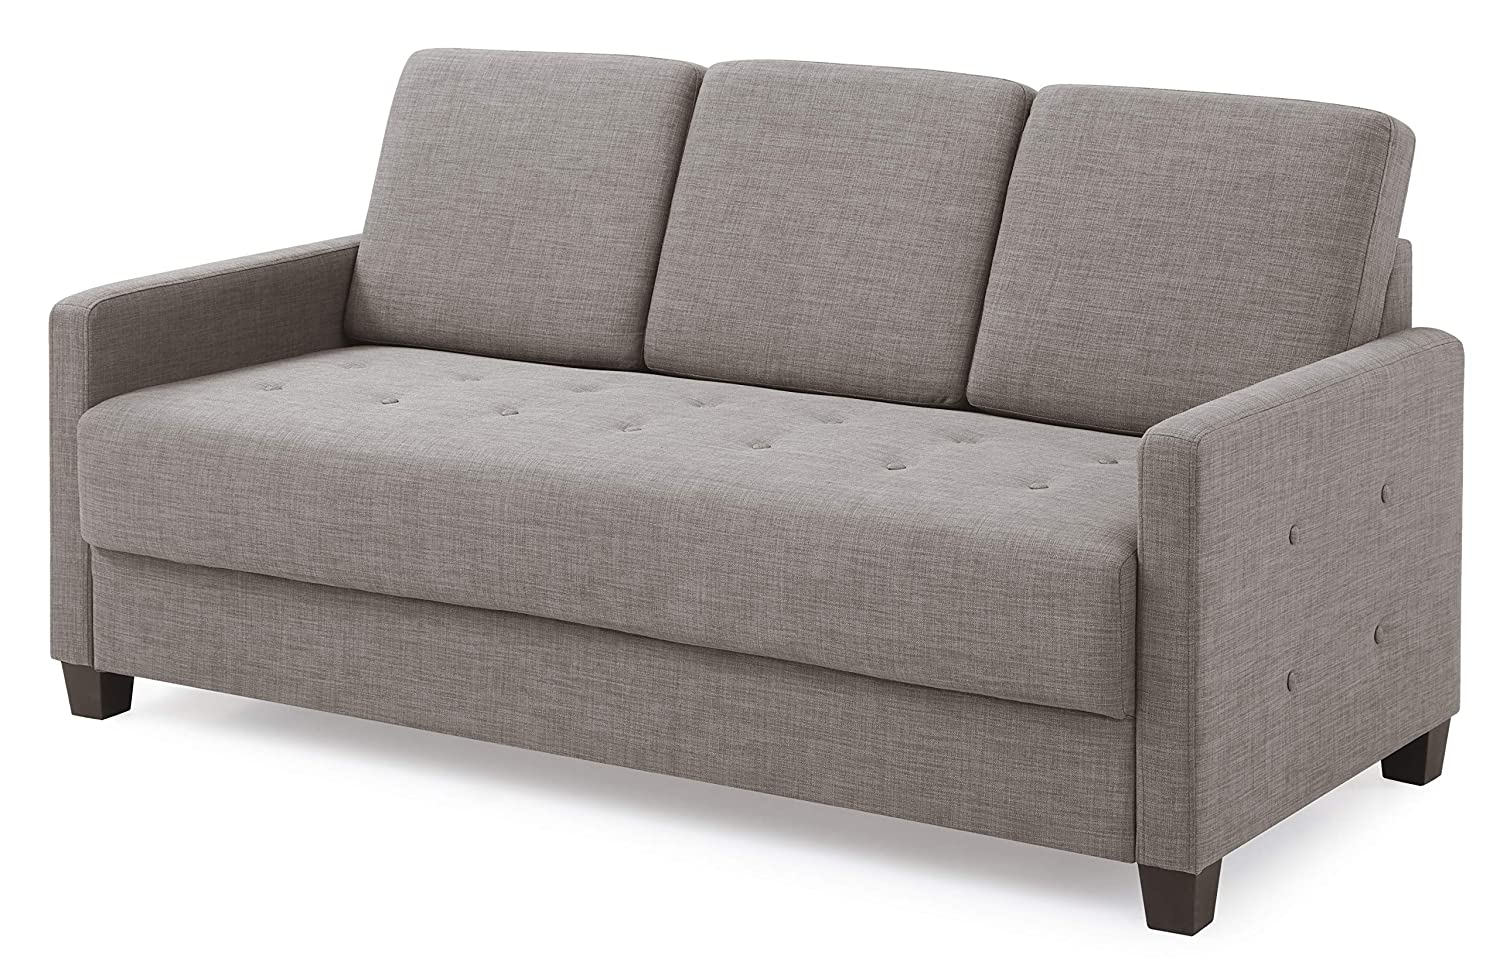 Amazon Com Glory Furniture Dino G780 S Sofa Gray Living Room